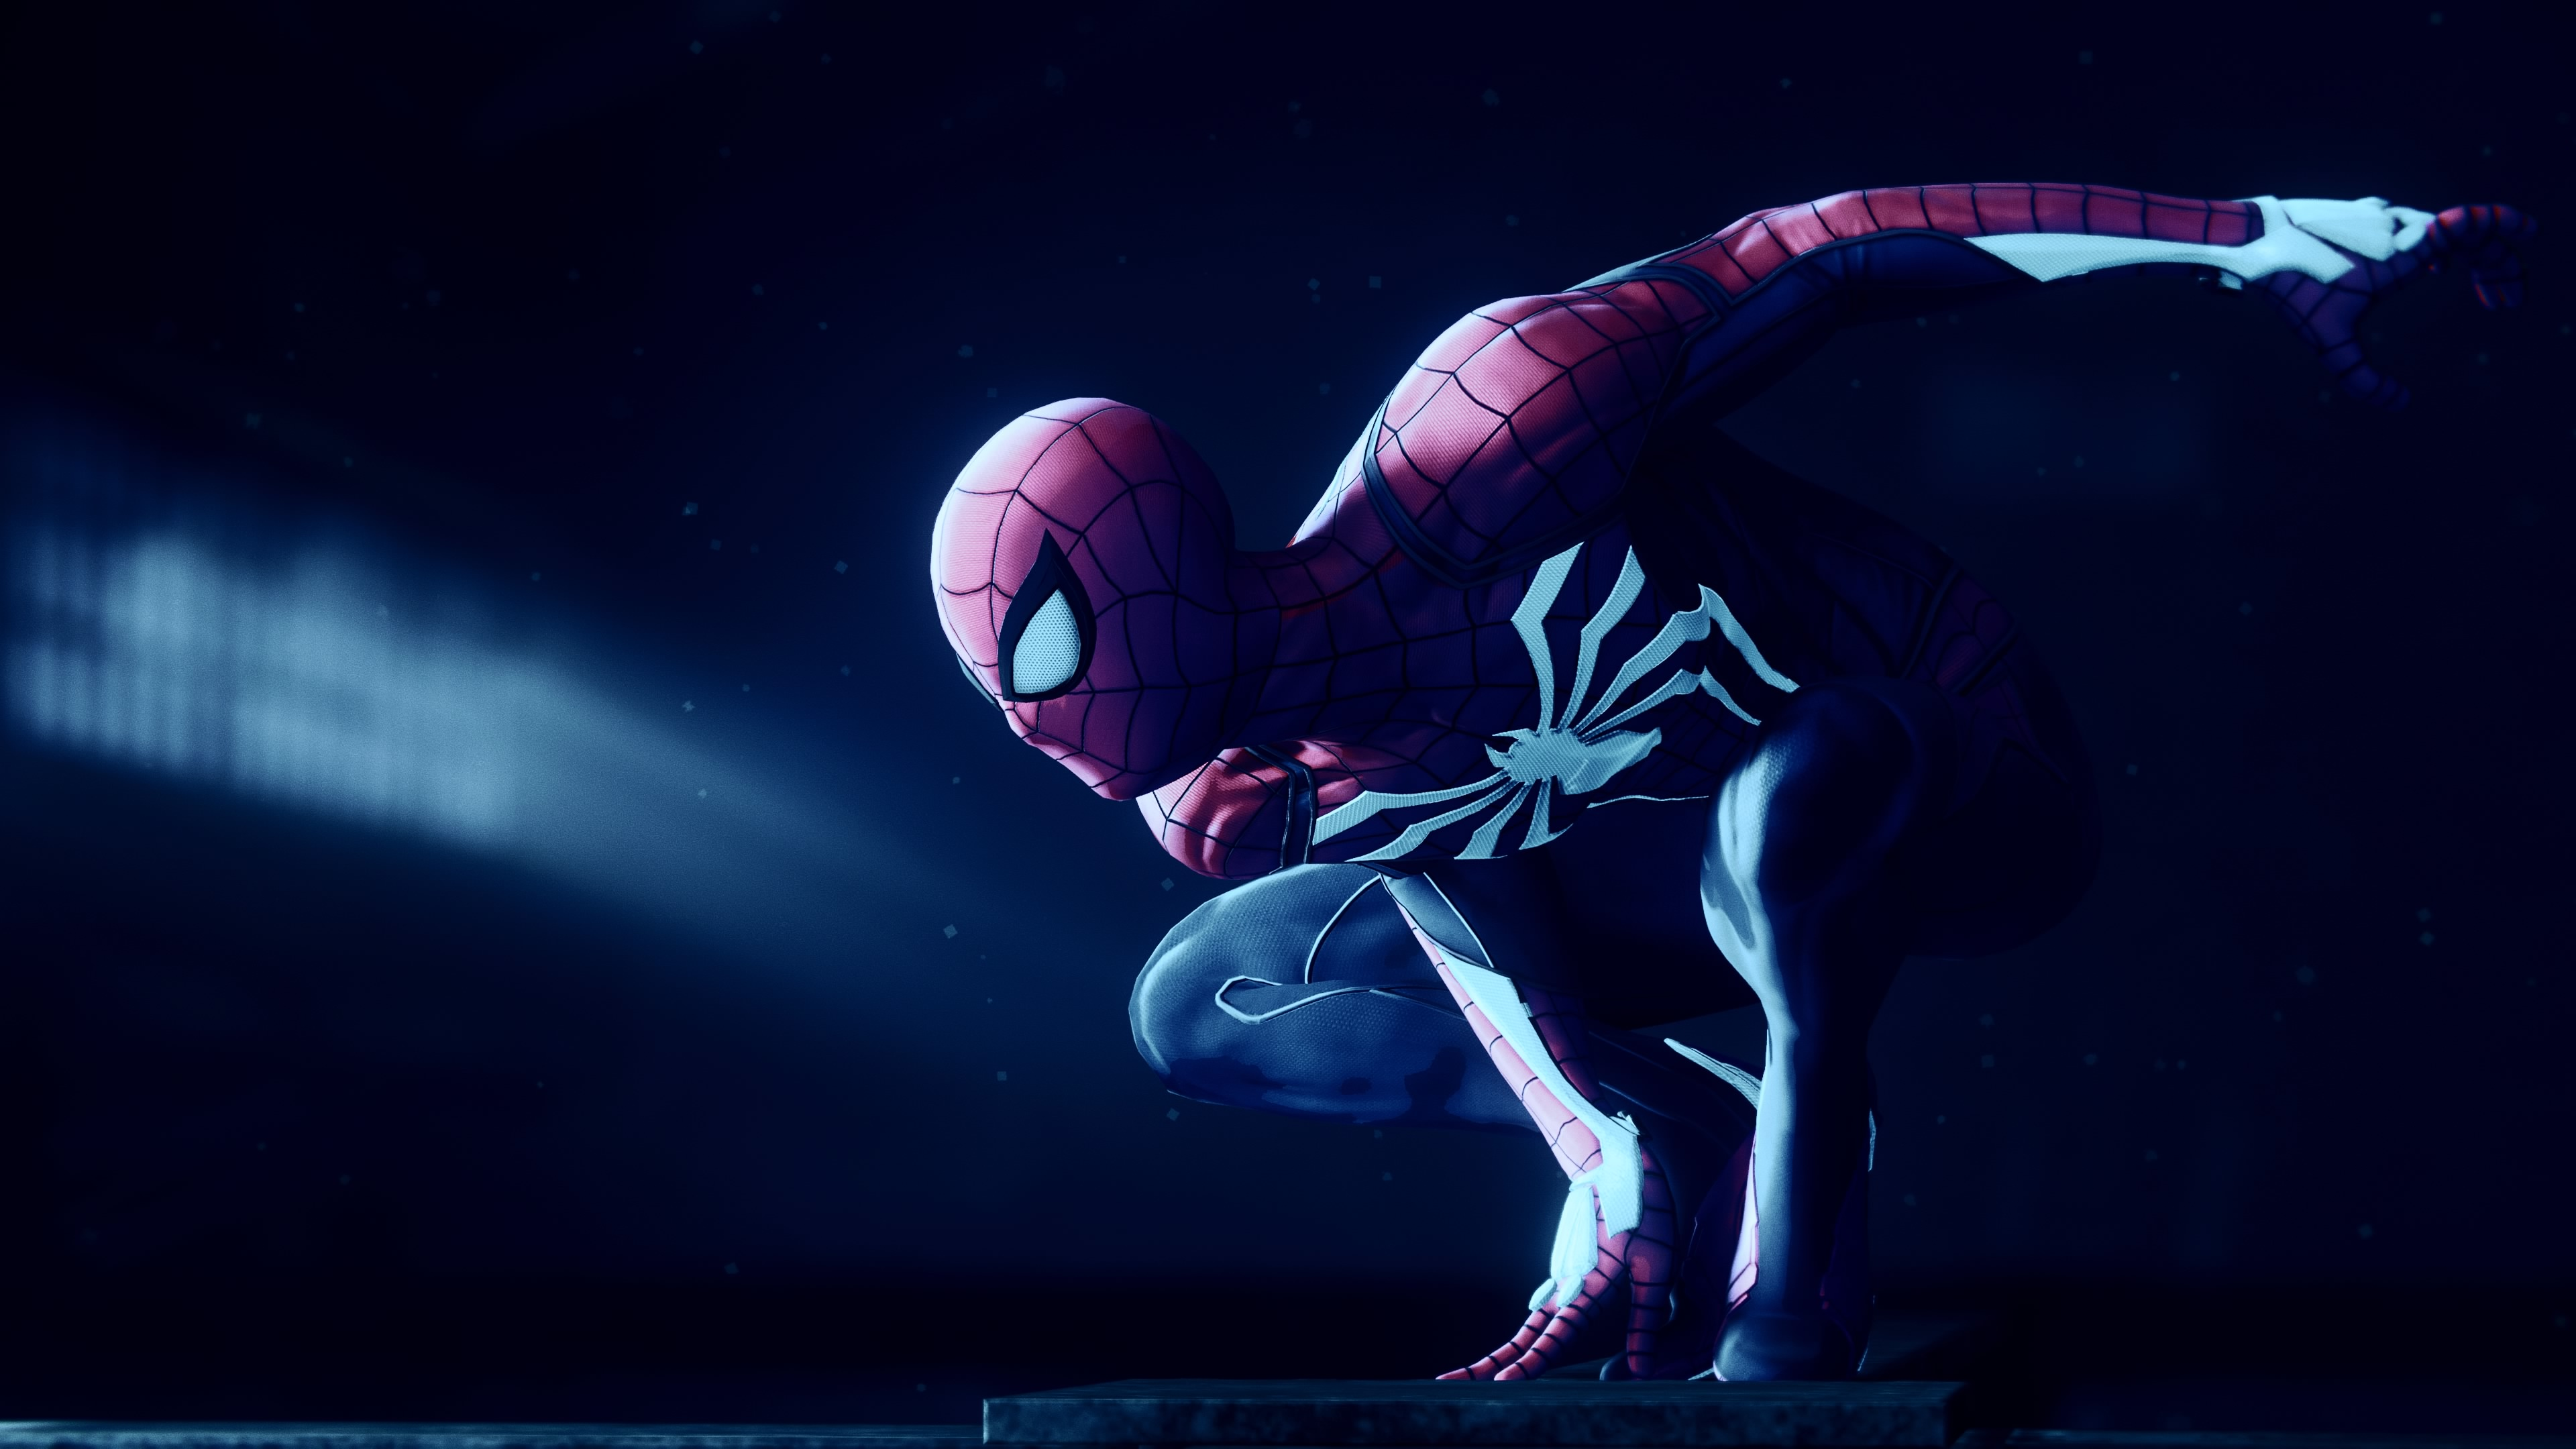 Marvel Spiderman Game 4k Hd Games 4k Wallpapers Images Backgrounds Photos And Pictures